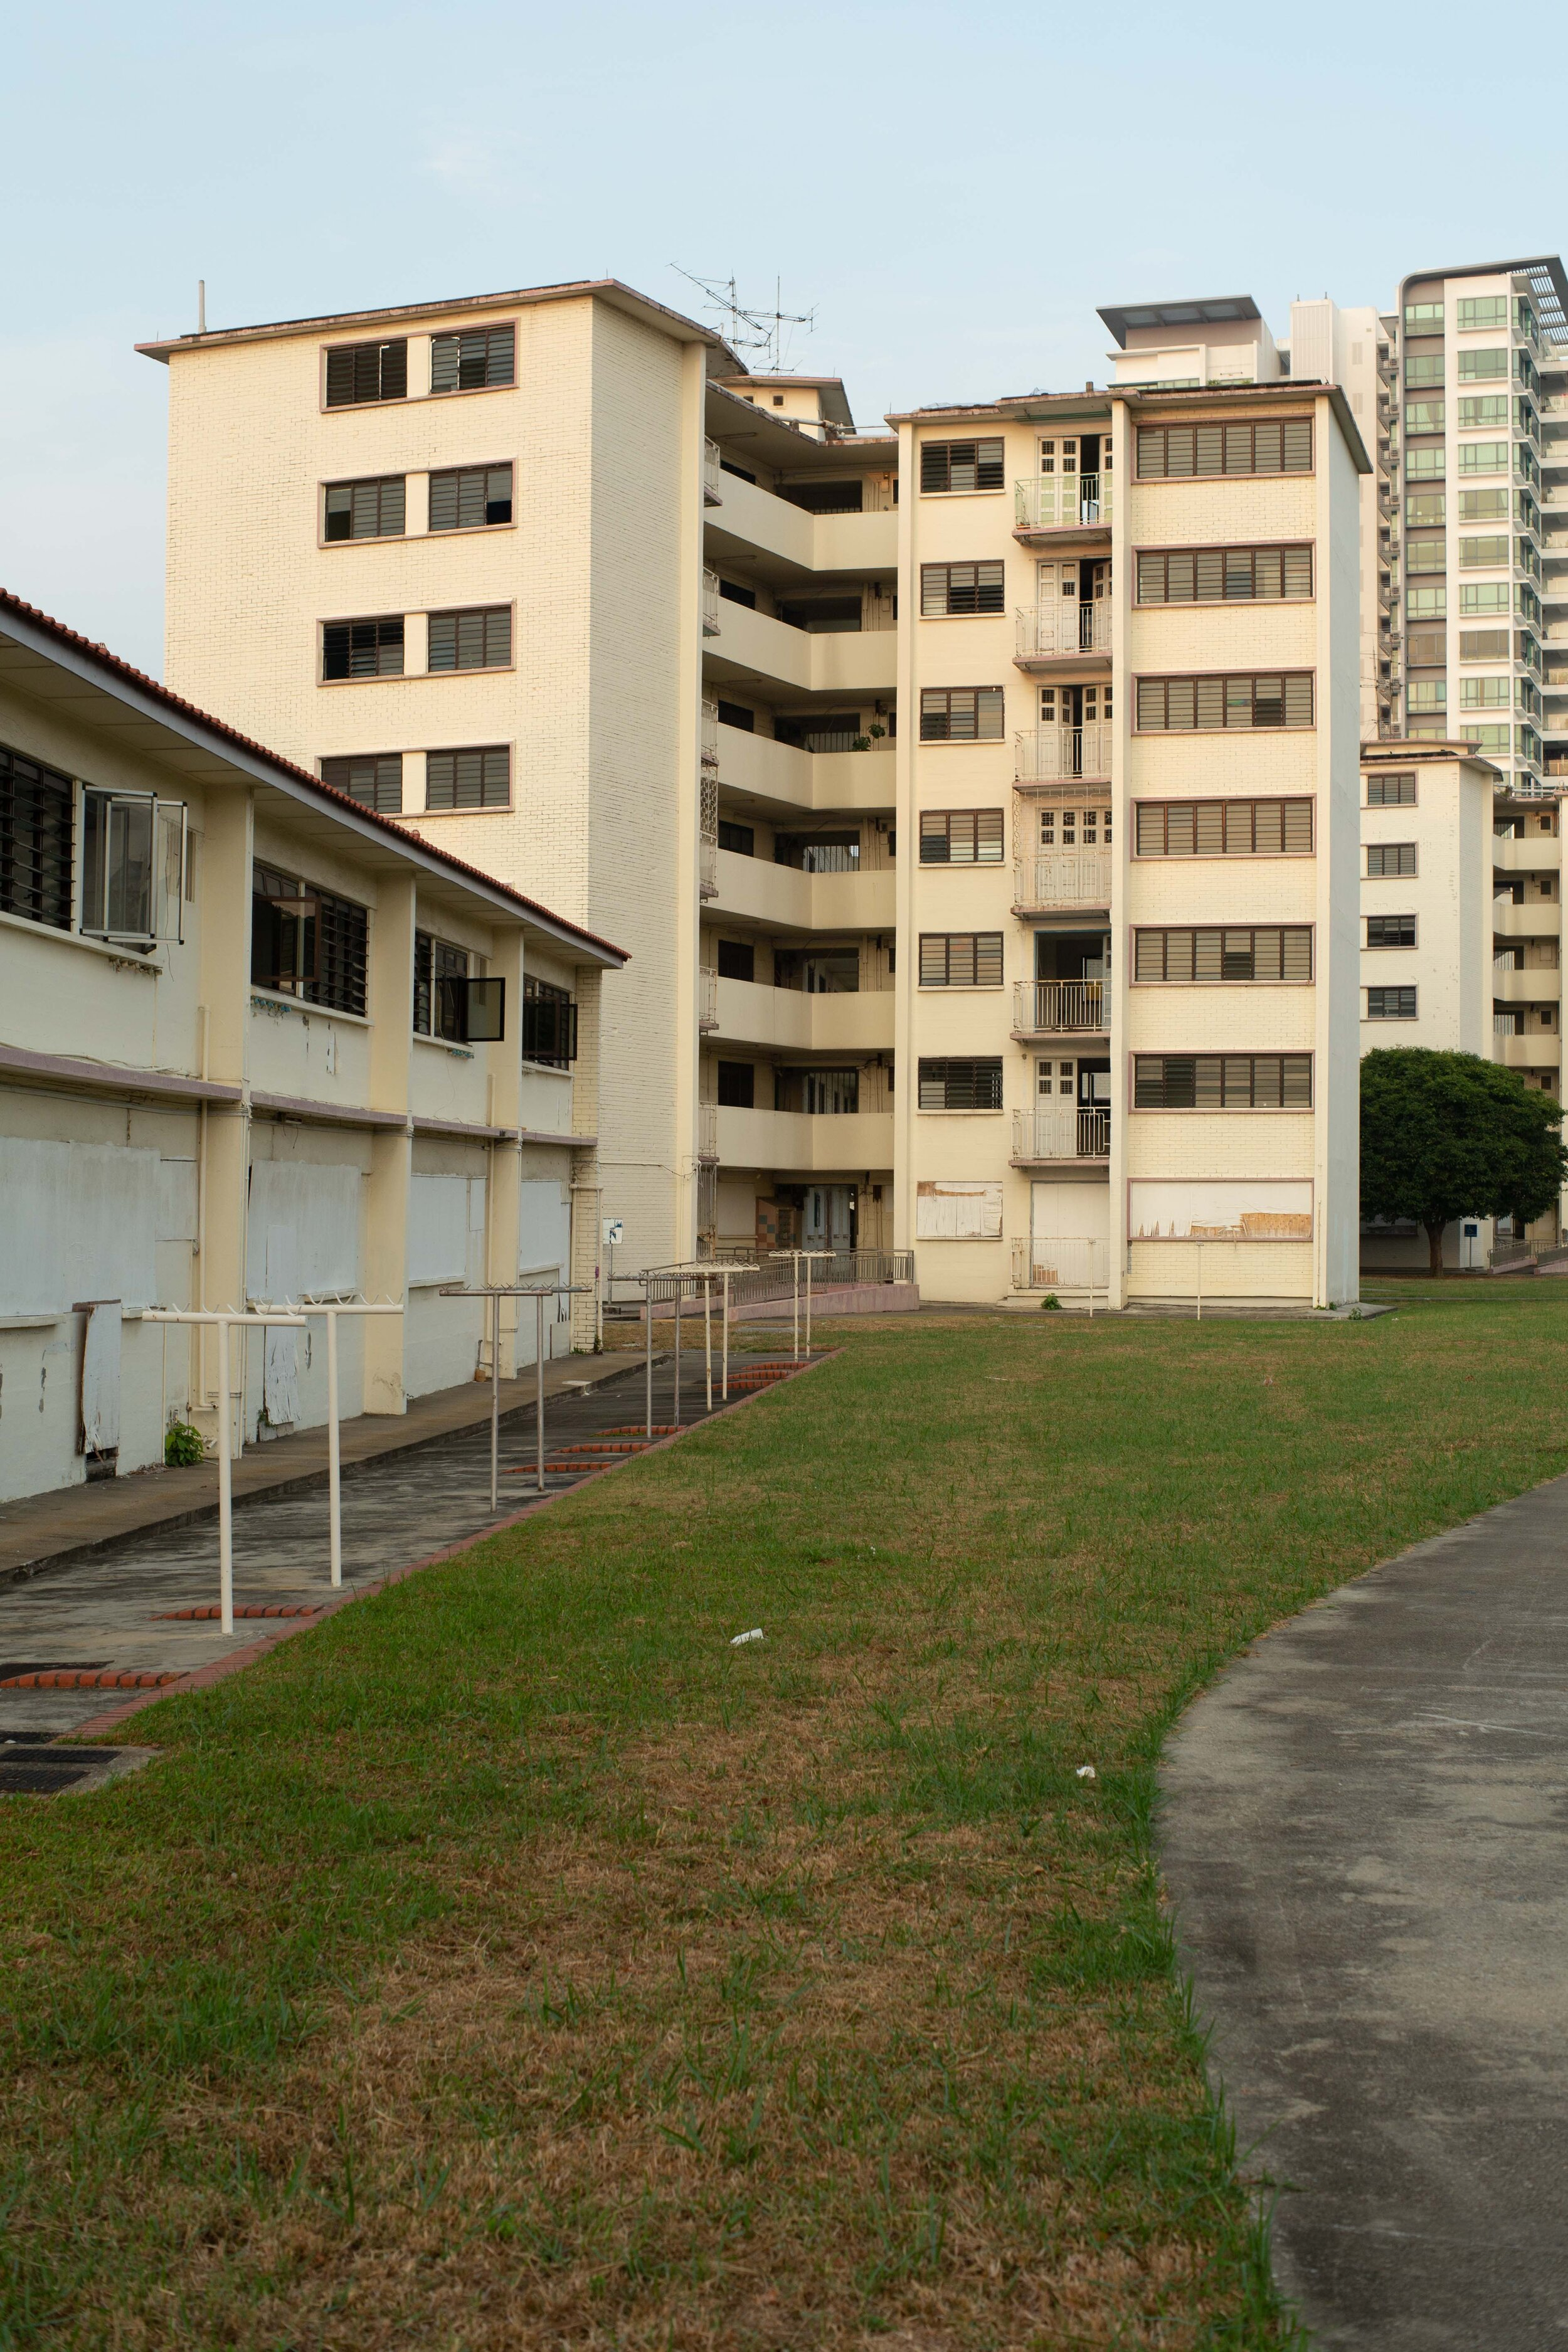 Sideview of a 'butterfly' block HDB in Dakota Crescent, with a two-story straight block in the foreground